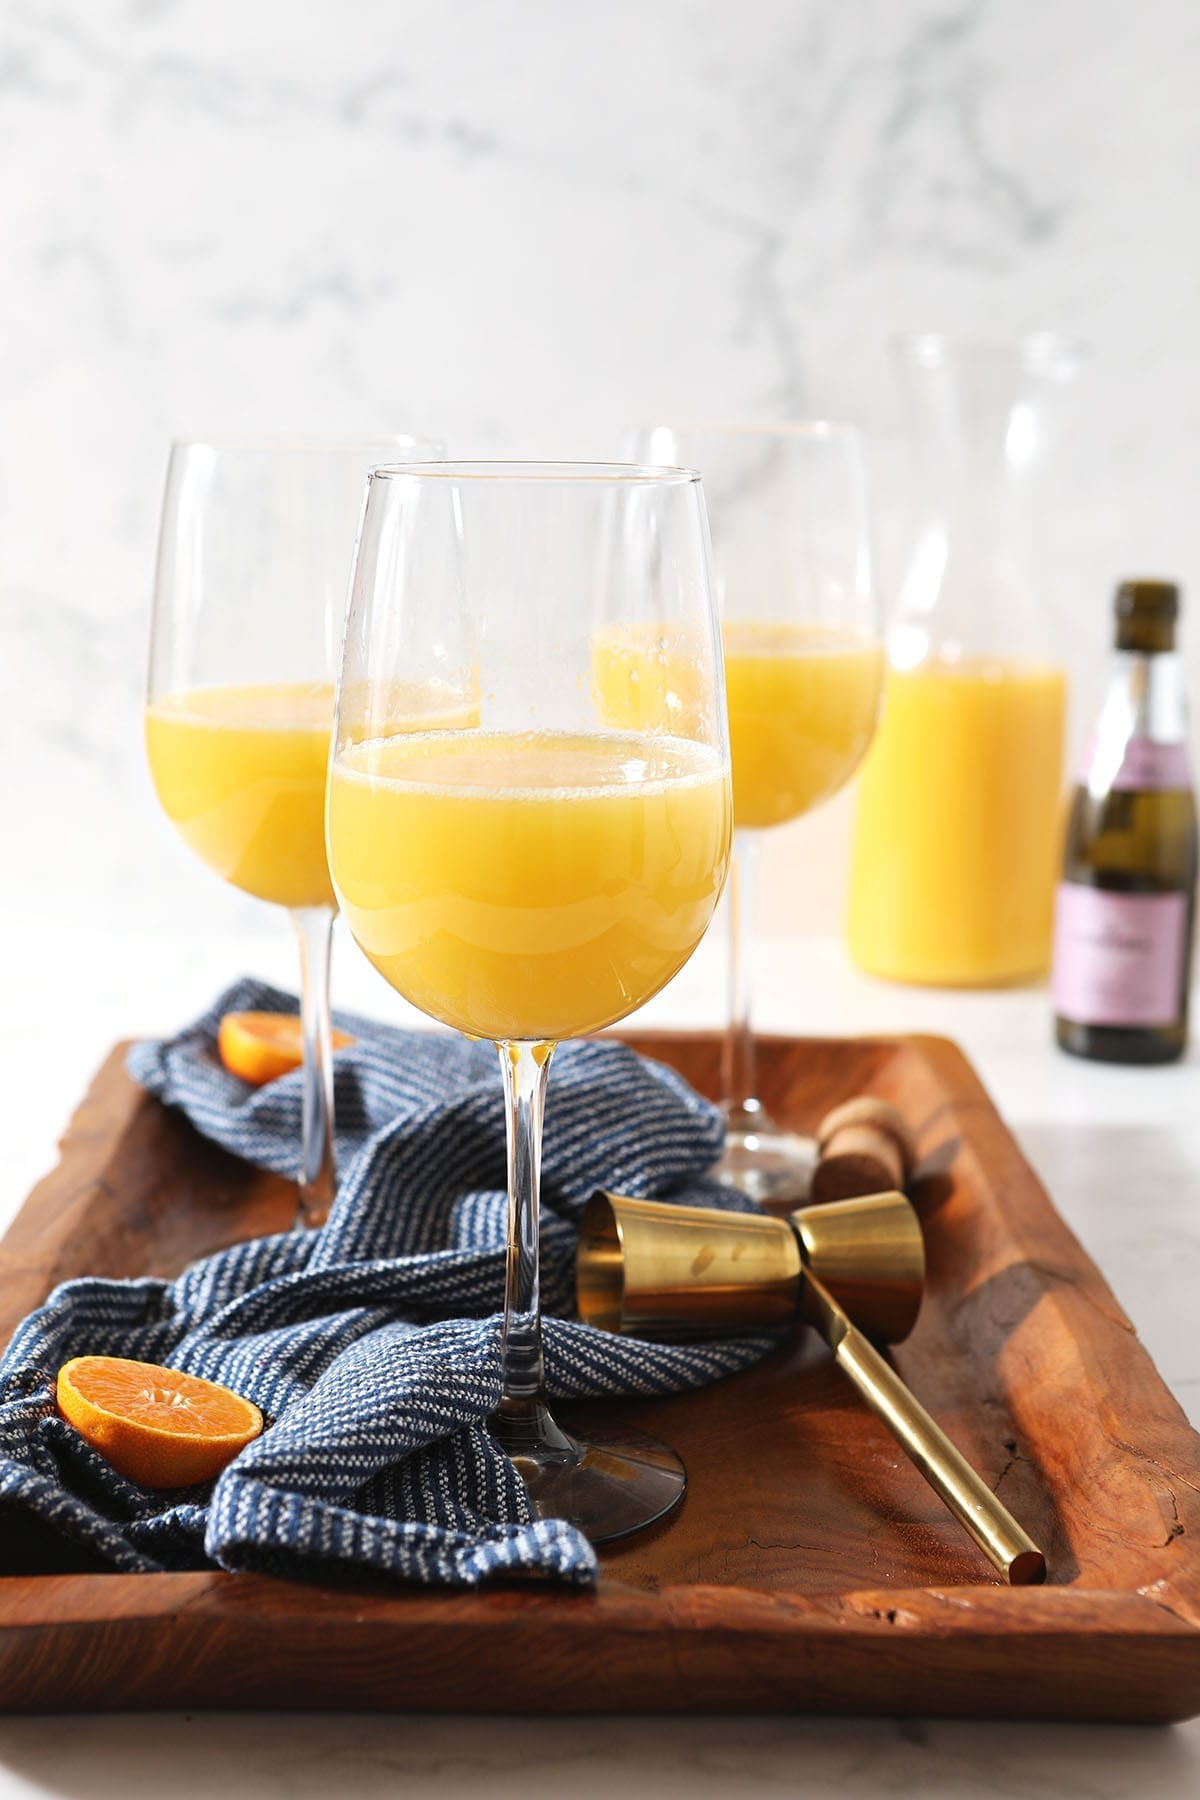 Three mimosas sit on a wooden tray with a dark blue towel